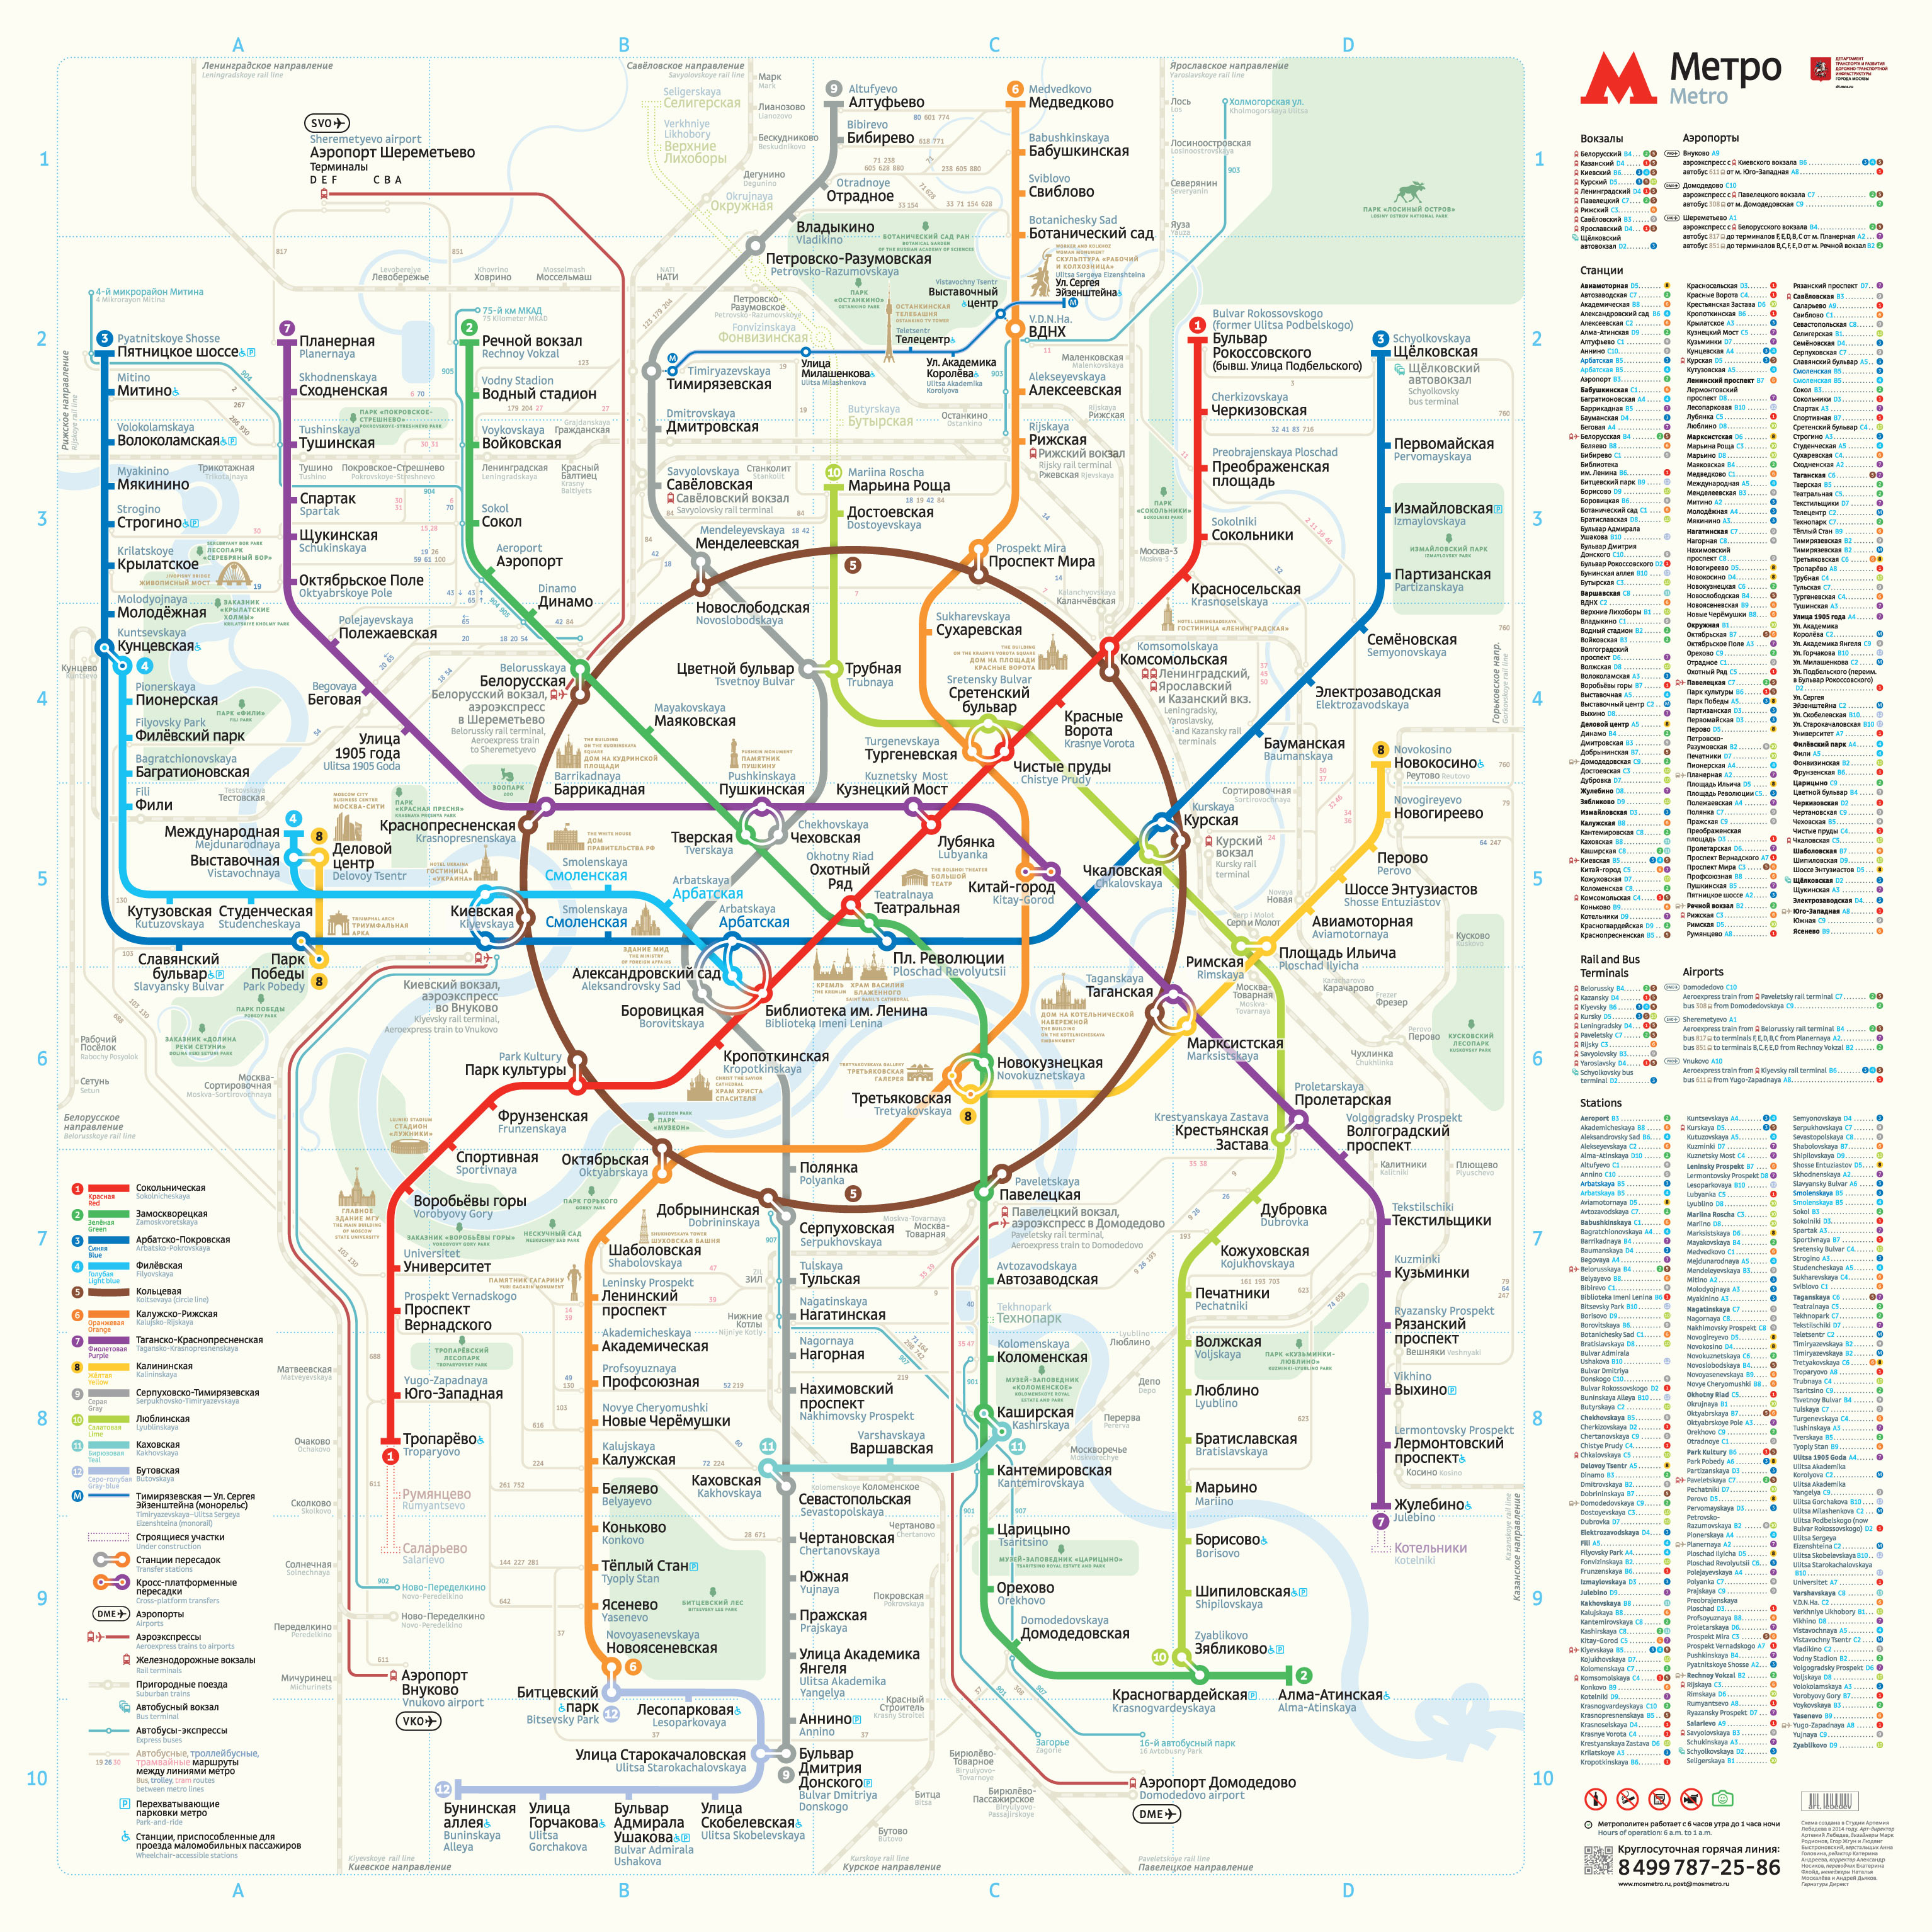 Moscow Subway Map - Bing images